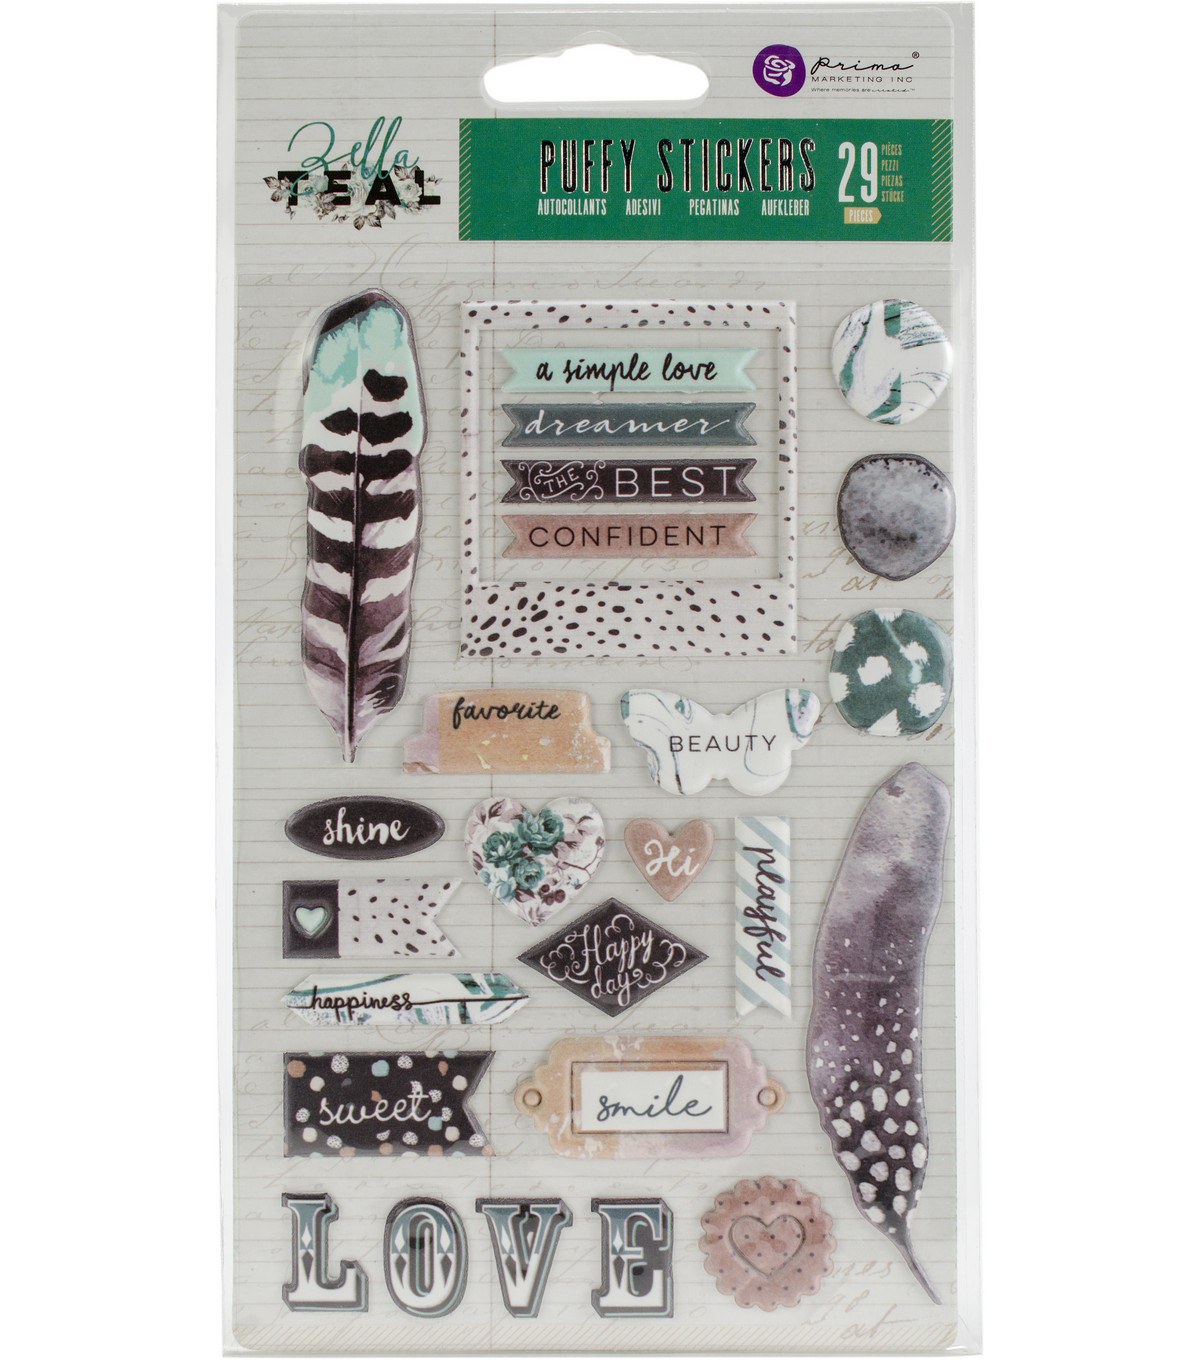 Prima Marketing Zella Teal 29 pk Puffy Stickers